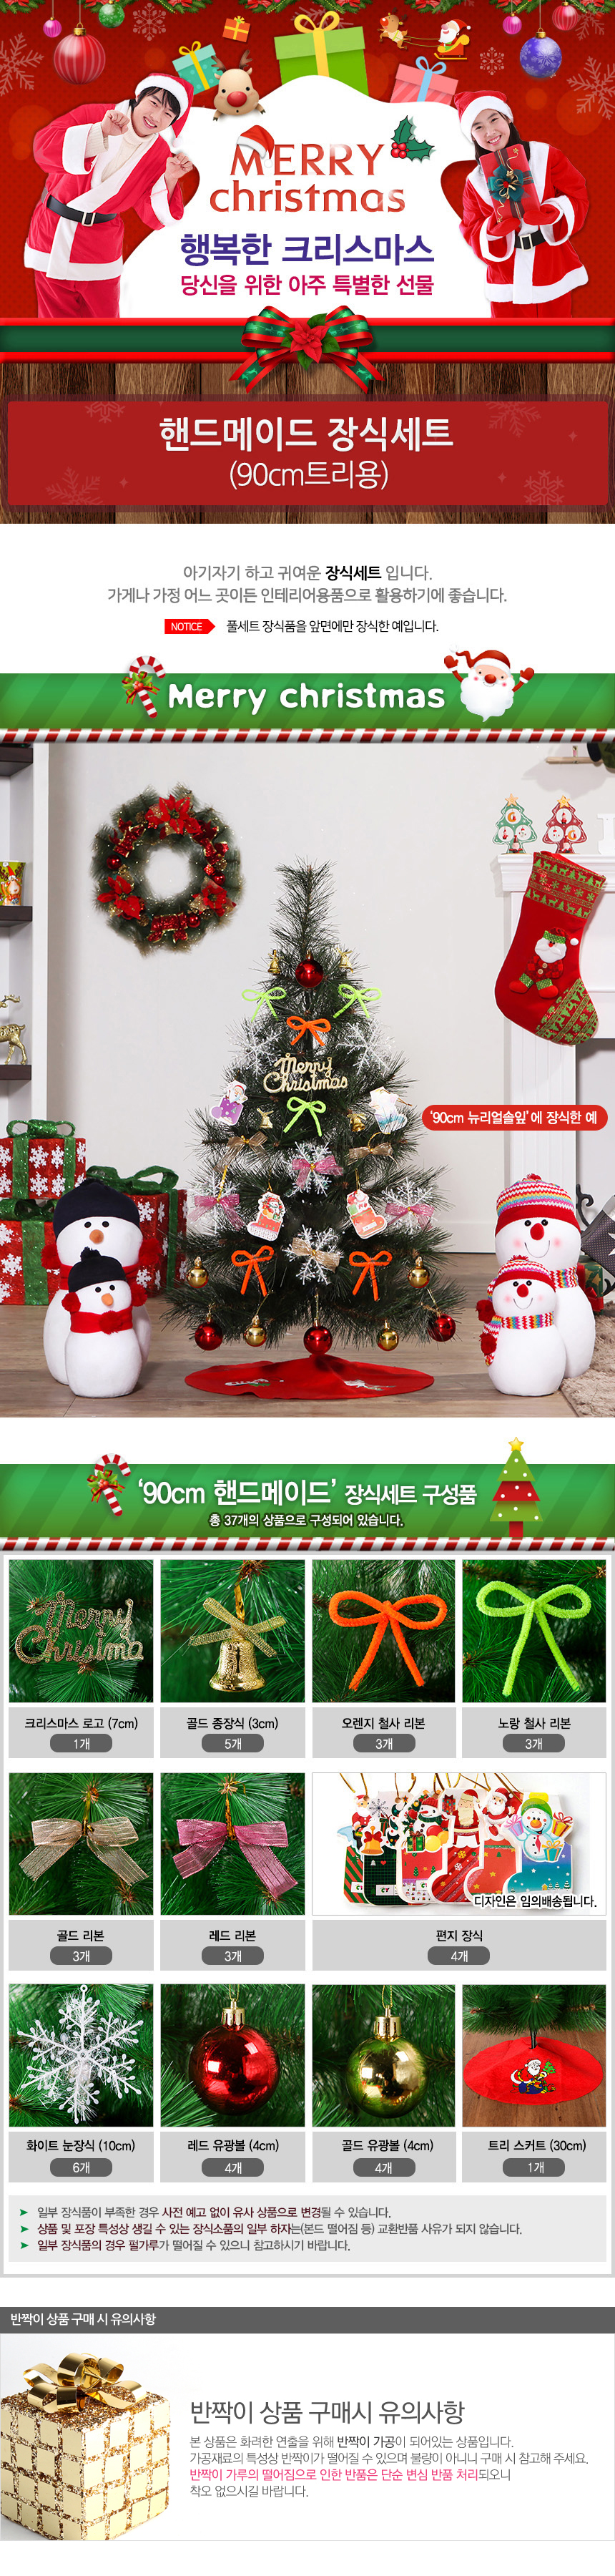 [ WINEQOK ] Christmas Goods / Handmade Decoration Set for Tree